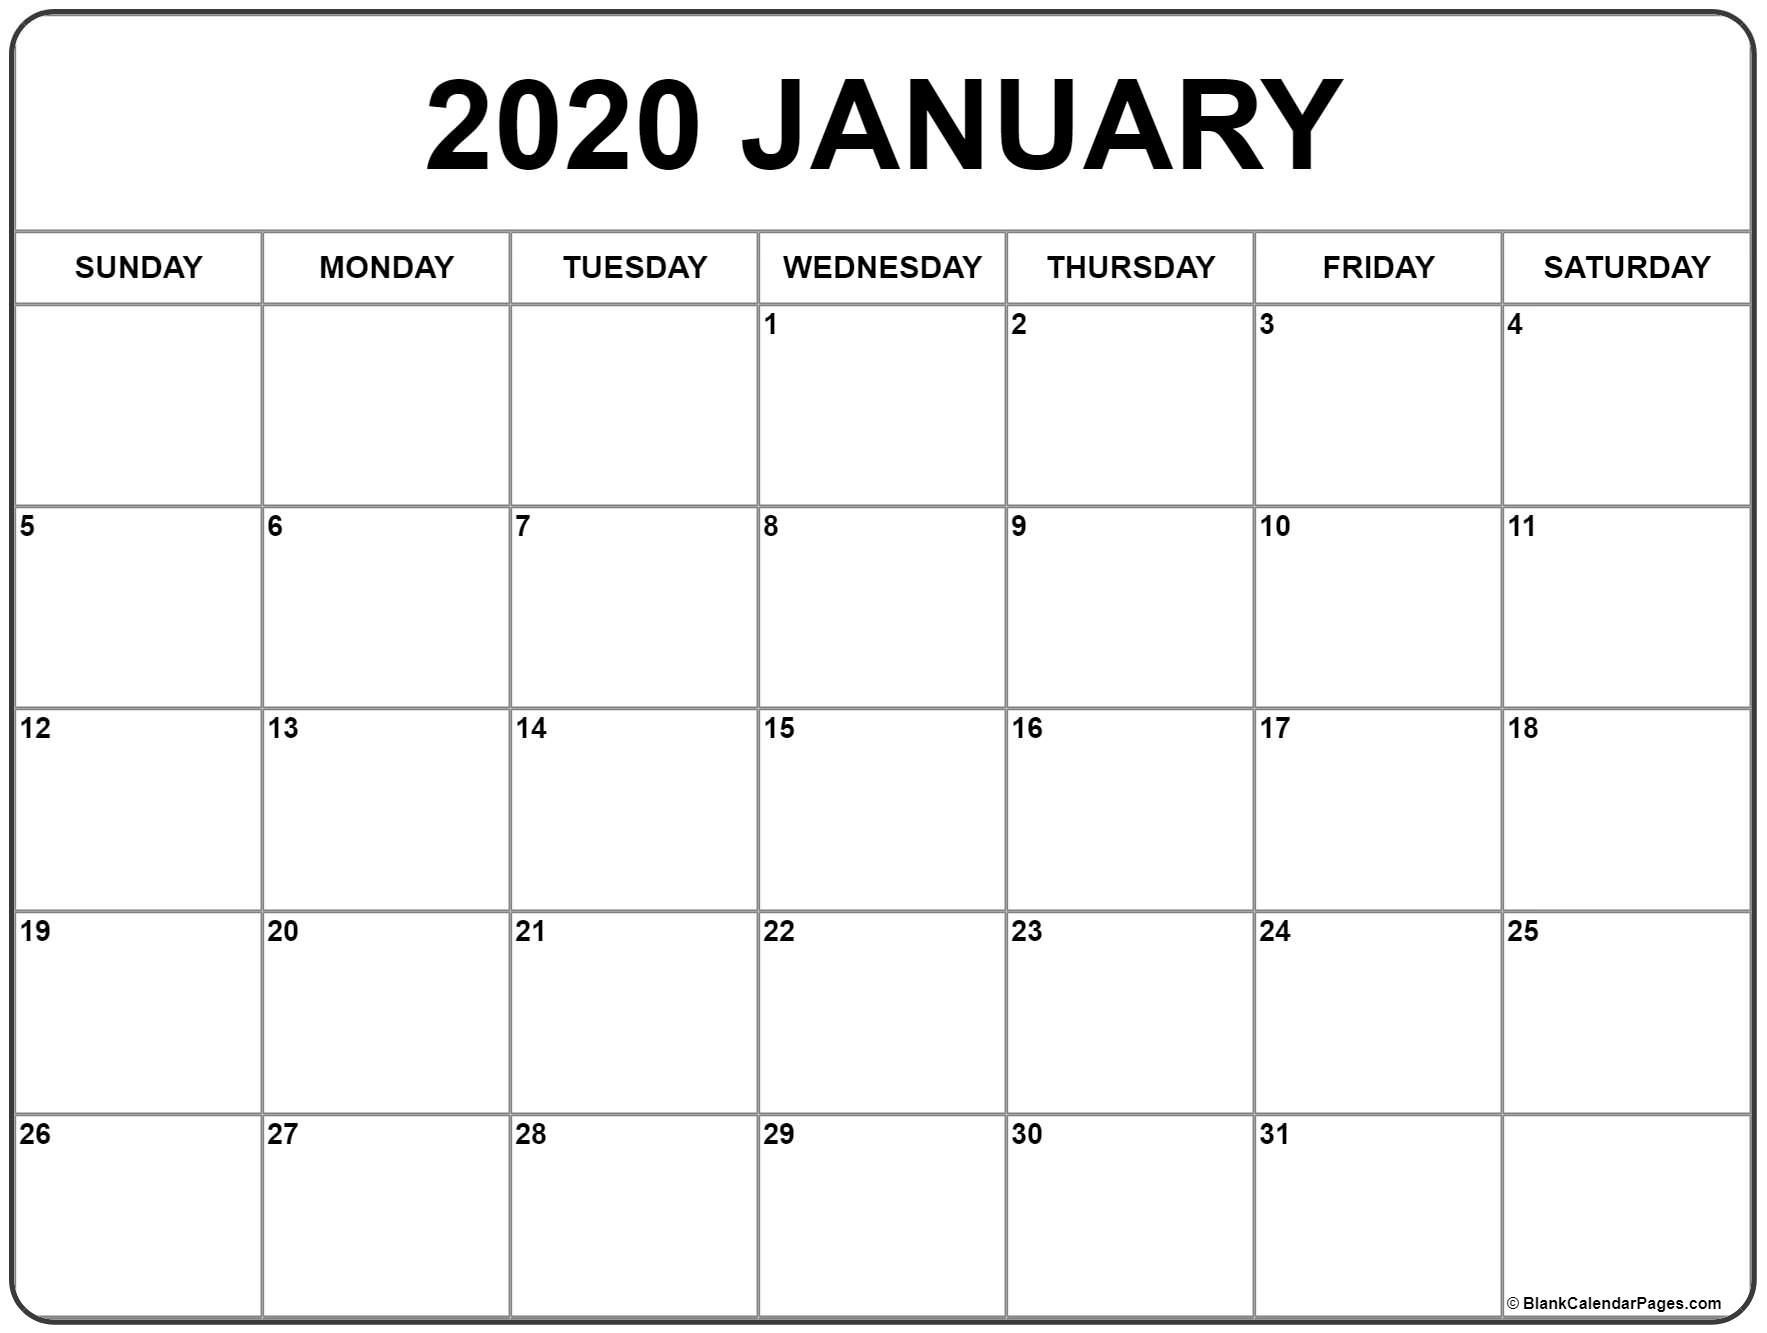 Printable Calendar Templates 2020 - Wpa.wpart.co